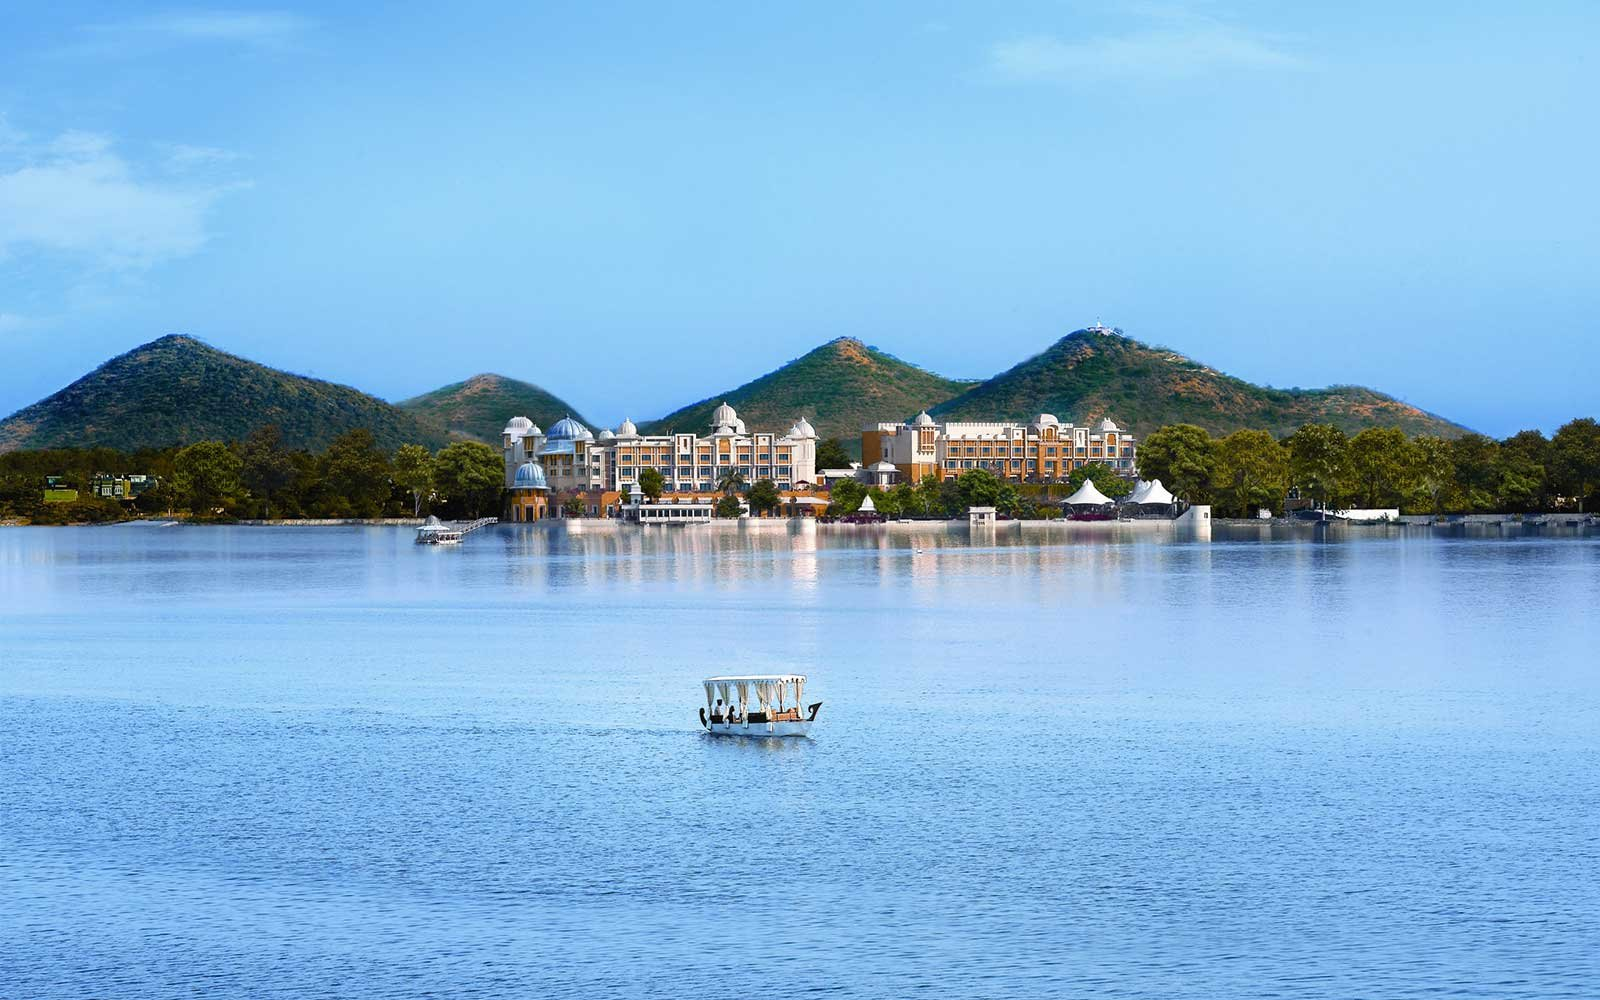 Leela Palace Udaipur Resort Hotel in Asia